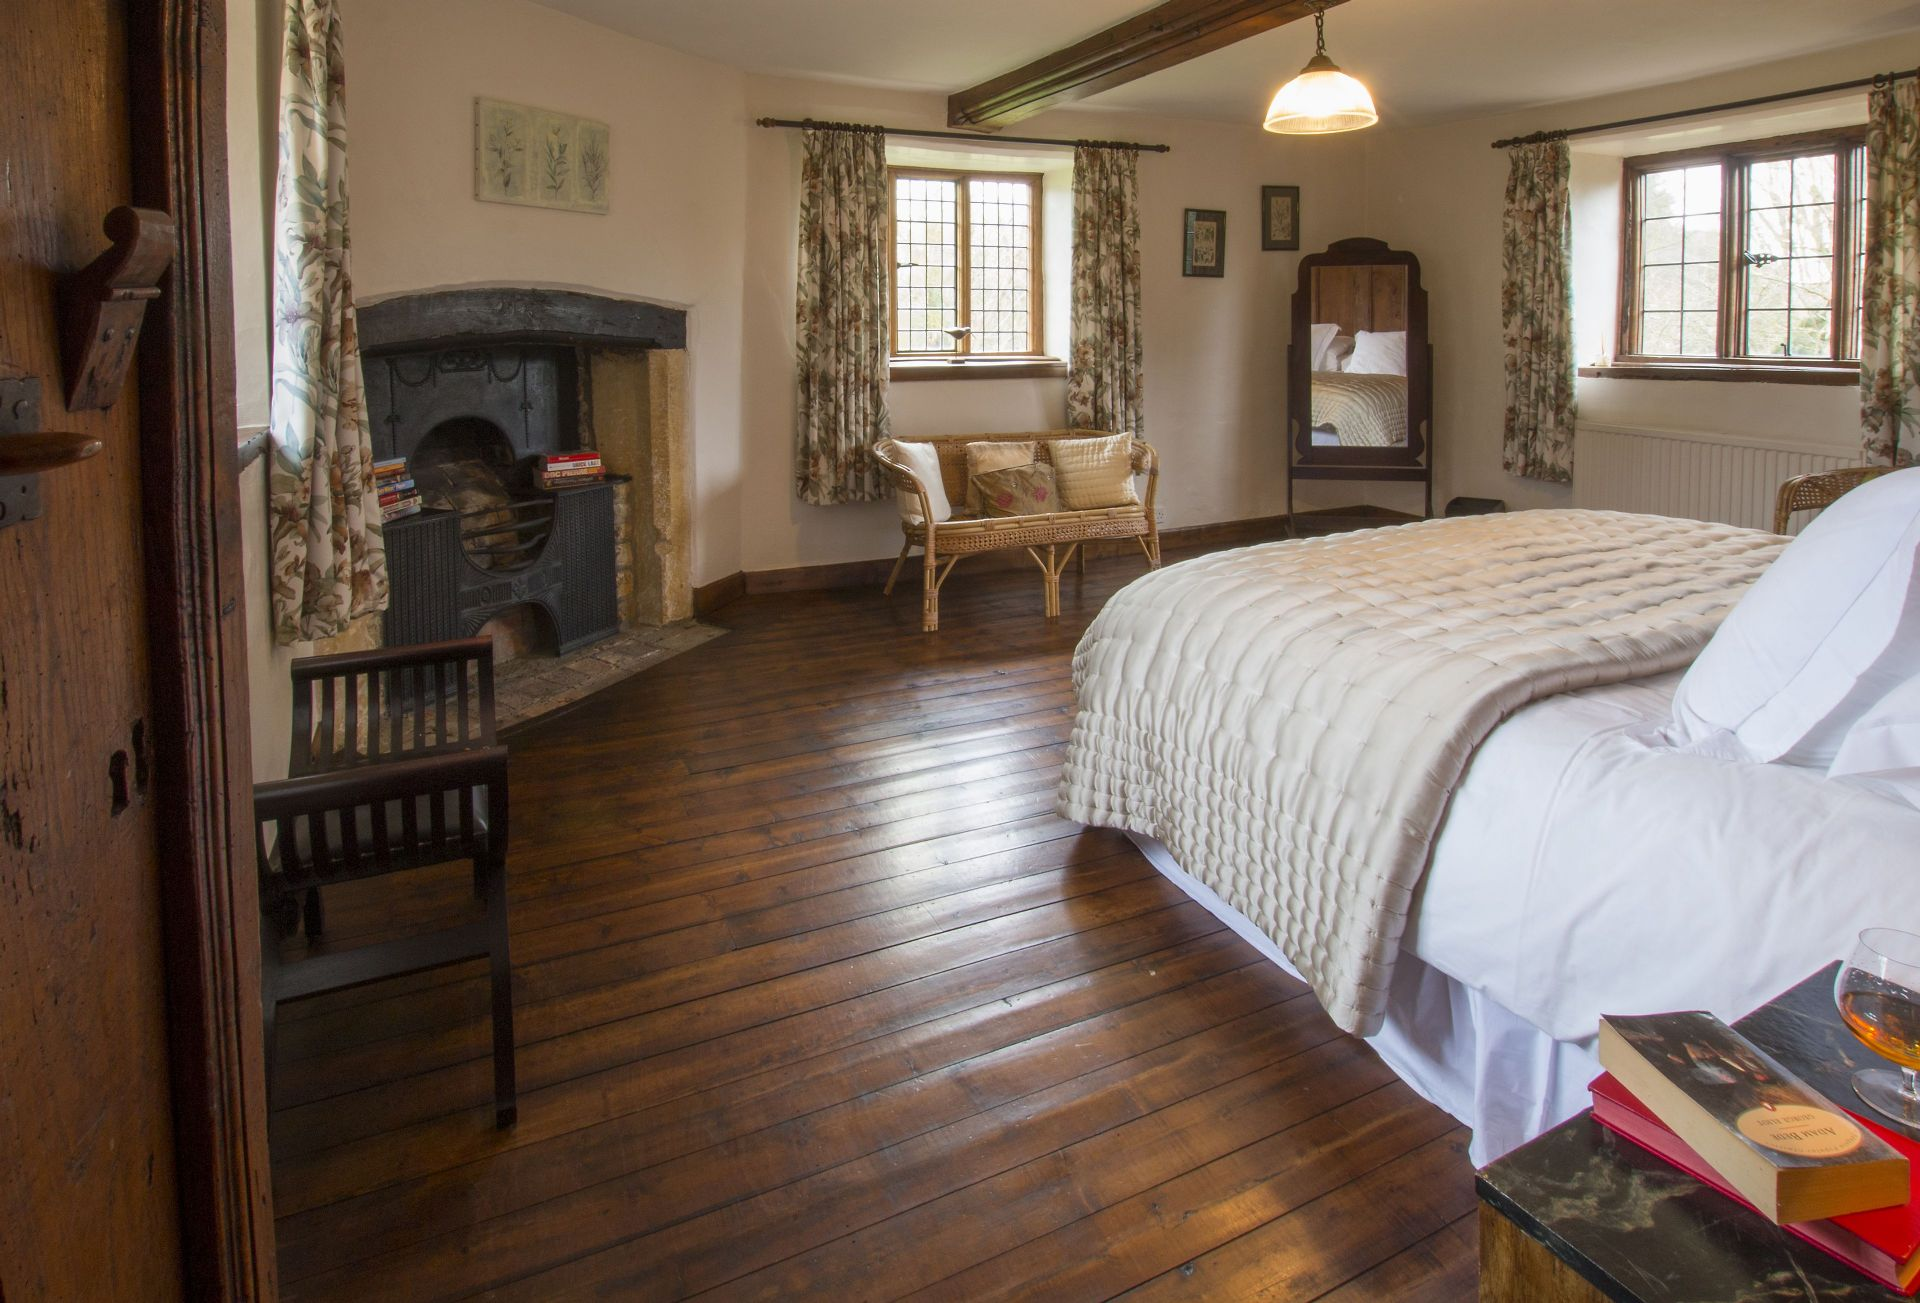 A view of the Master Bedroom with the fireplace